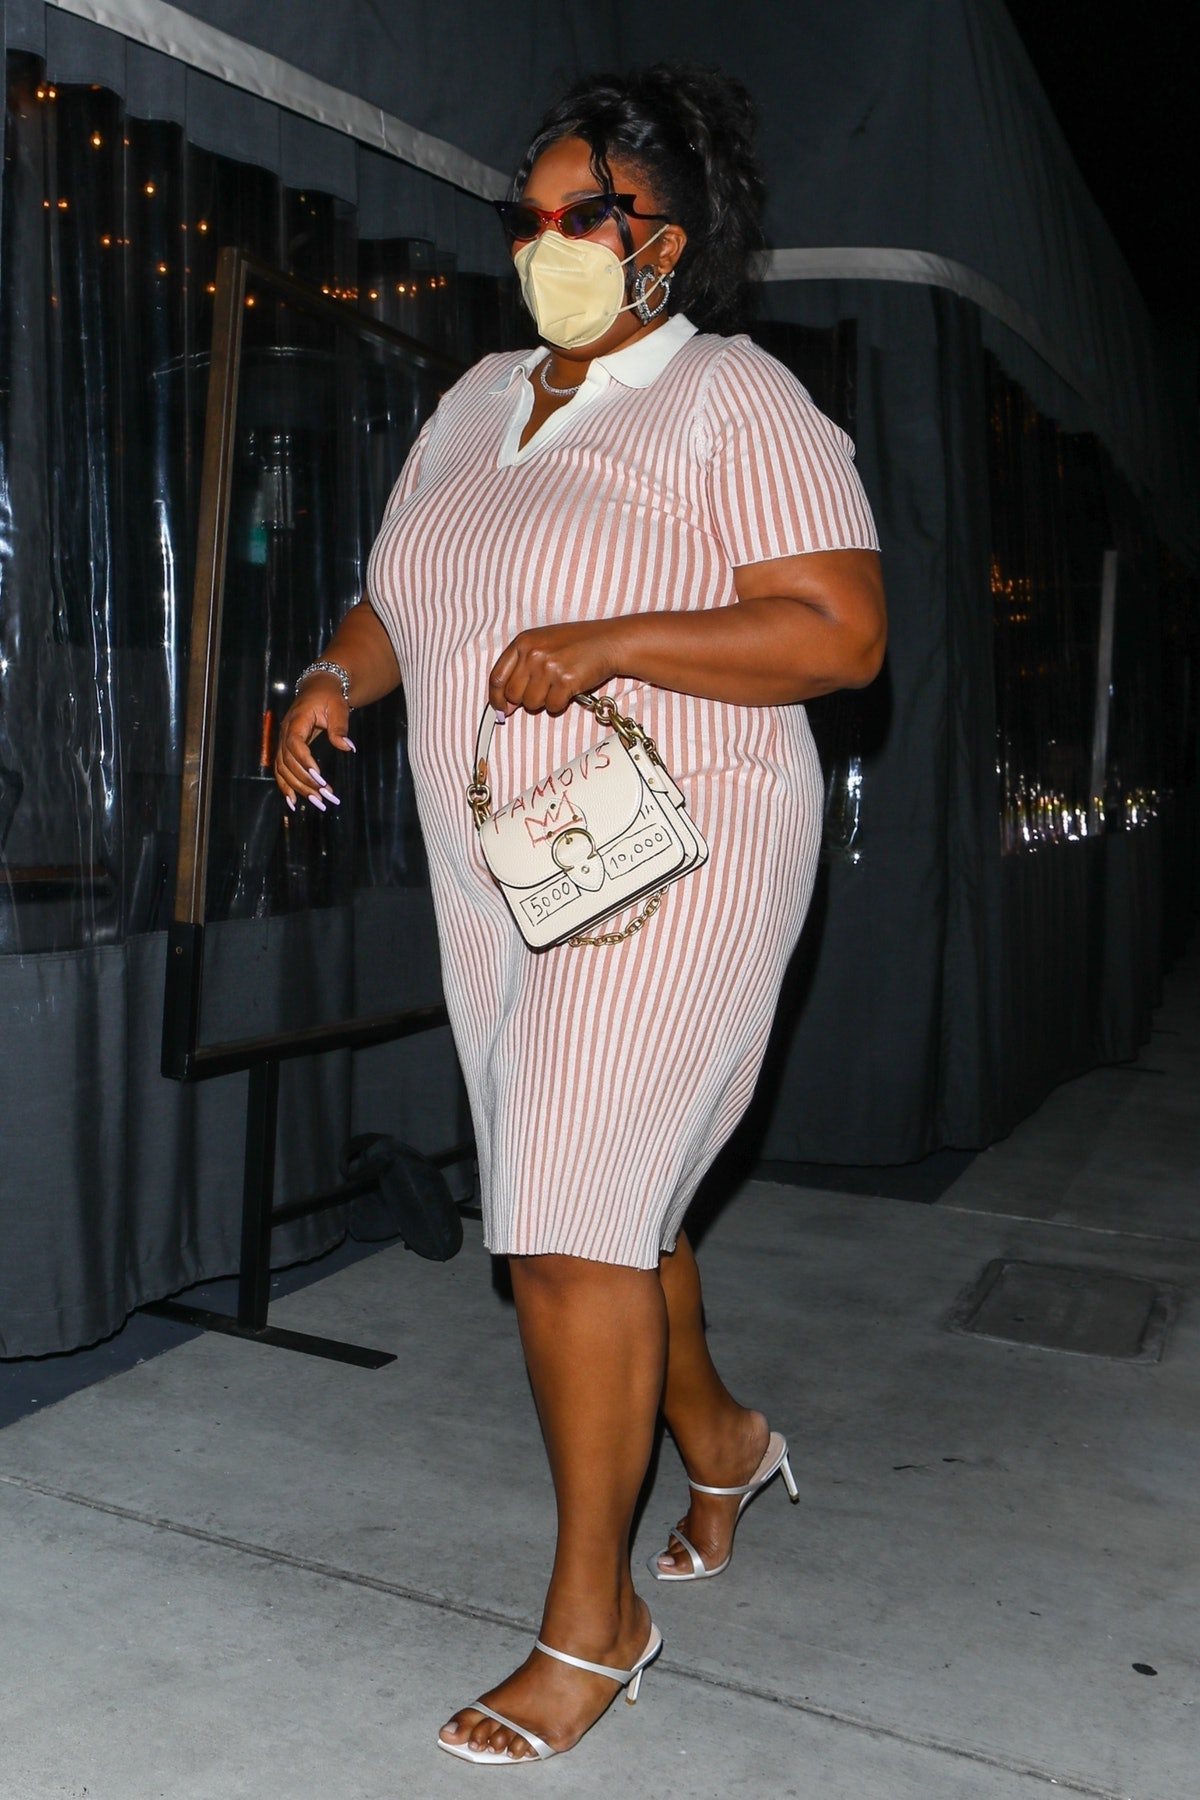 Singer, Lizzo looks stunning in a pink and white striped dress while leaving dinner at Crossroads Ki...